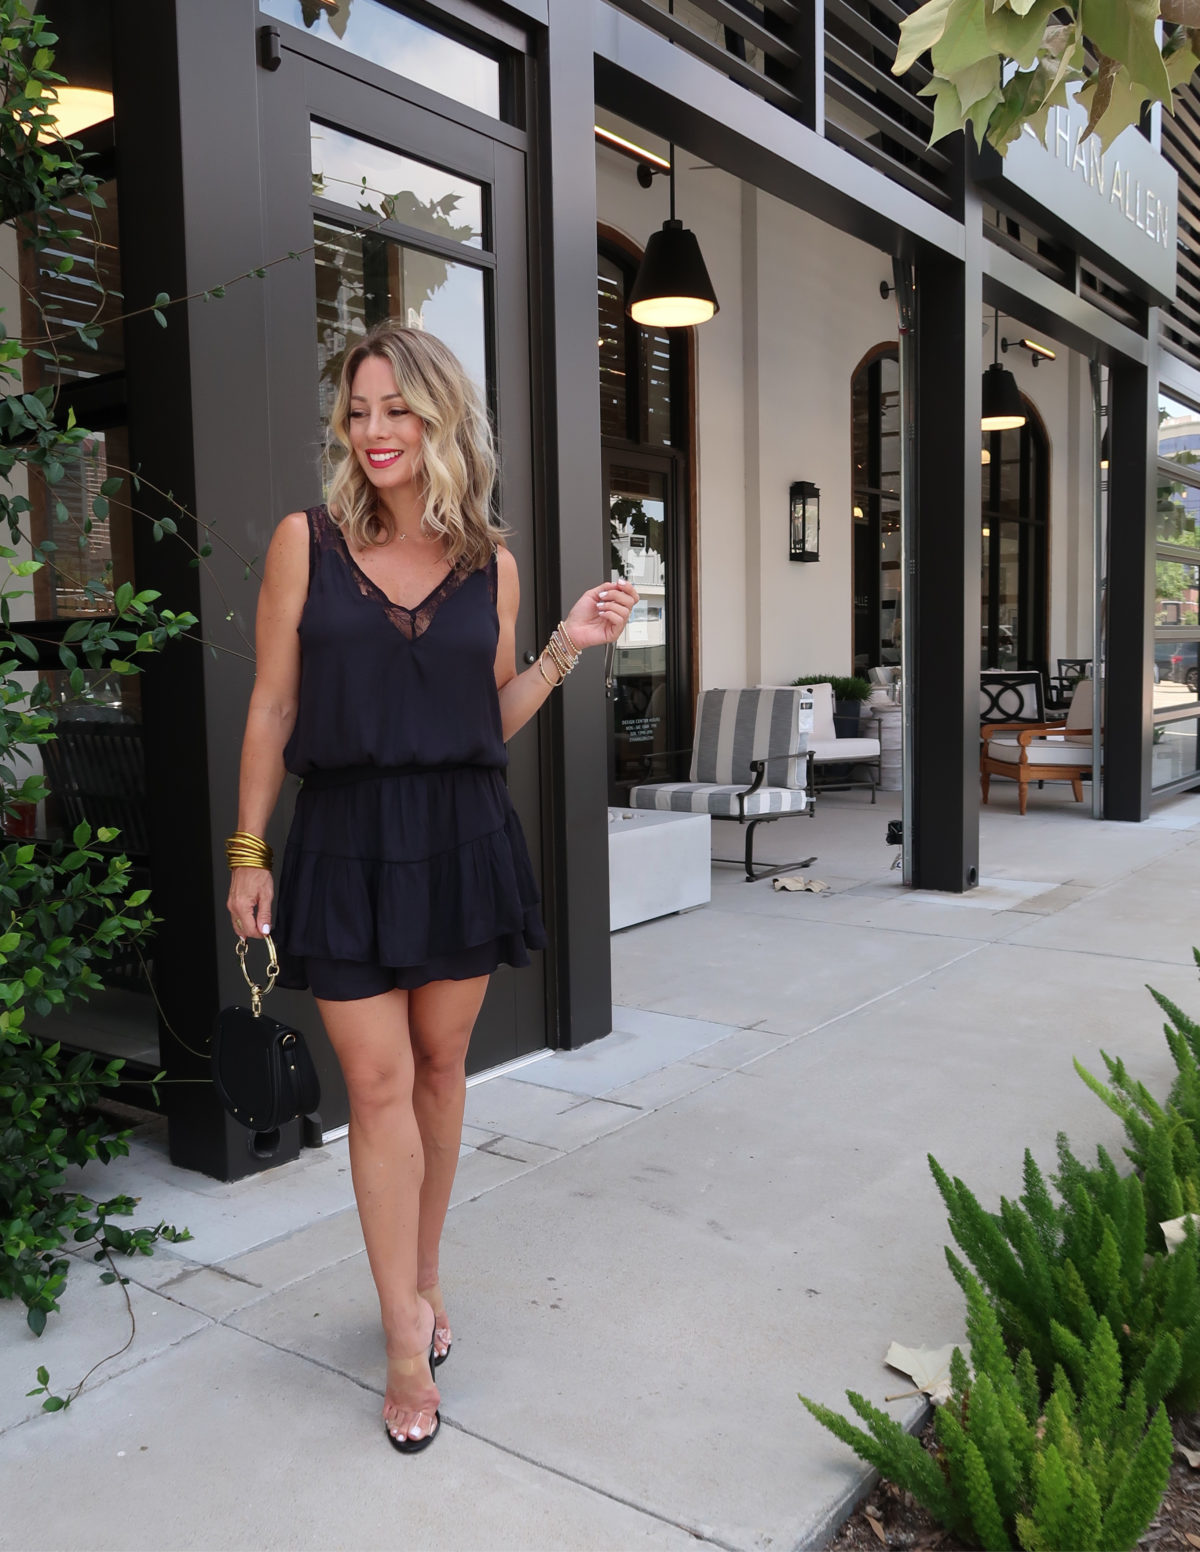 Flirty Summer Styles & Date Night Dresses,Black Romper, Ring Bag